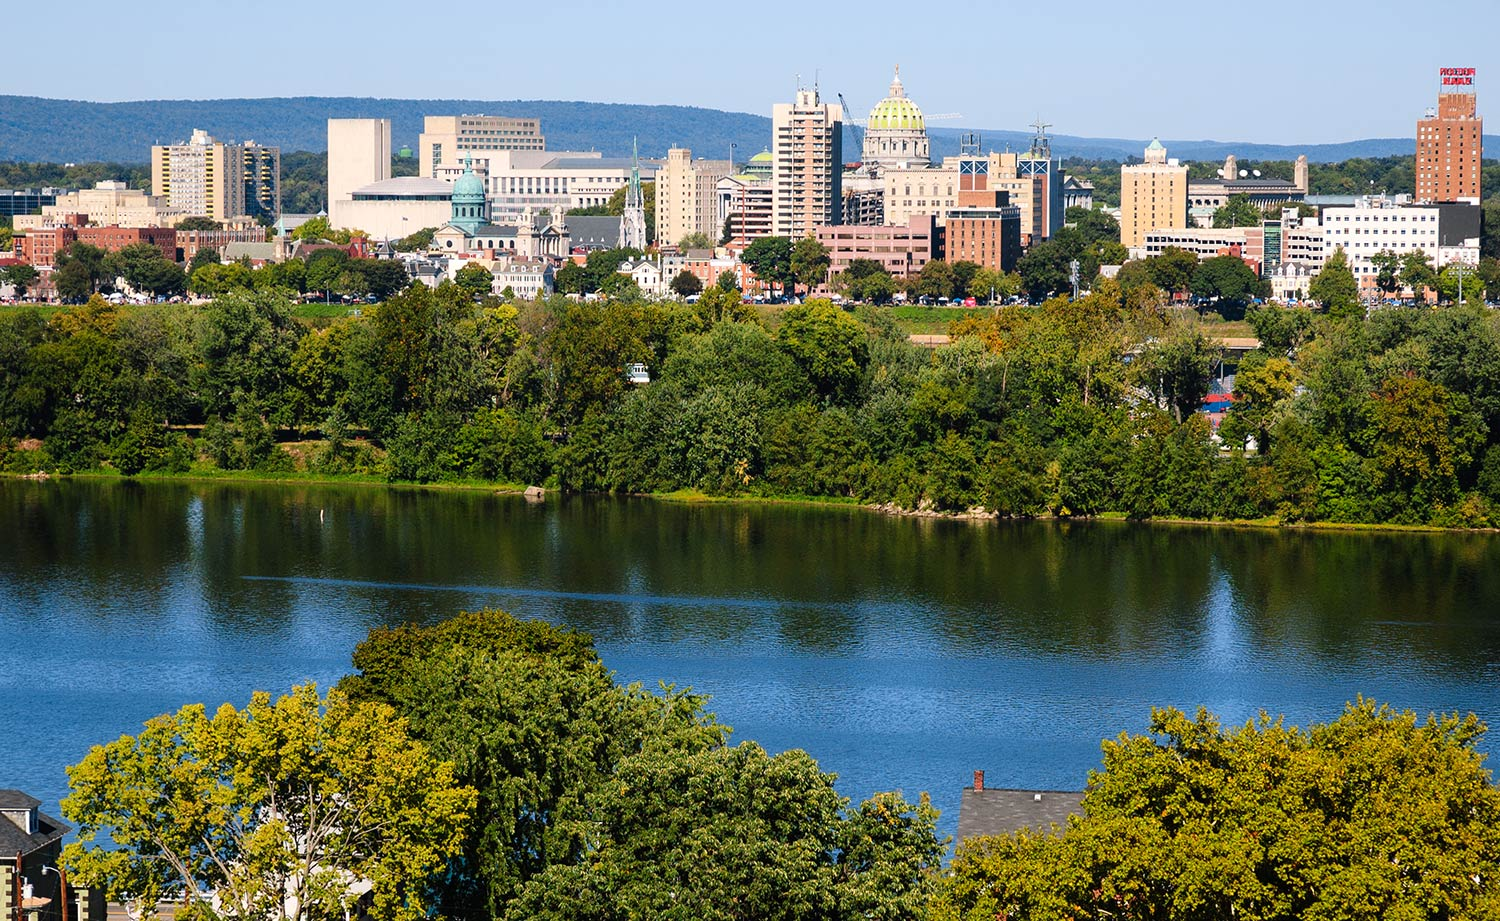 Bright blue water surrounded by tall leafy trees set against the cityscape of Harrisburg